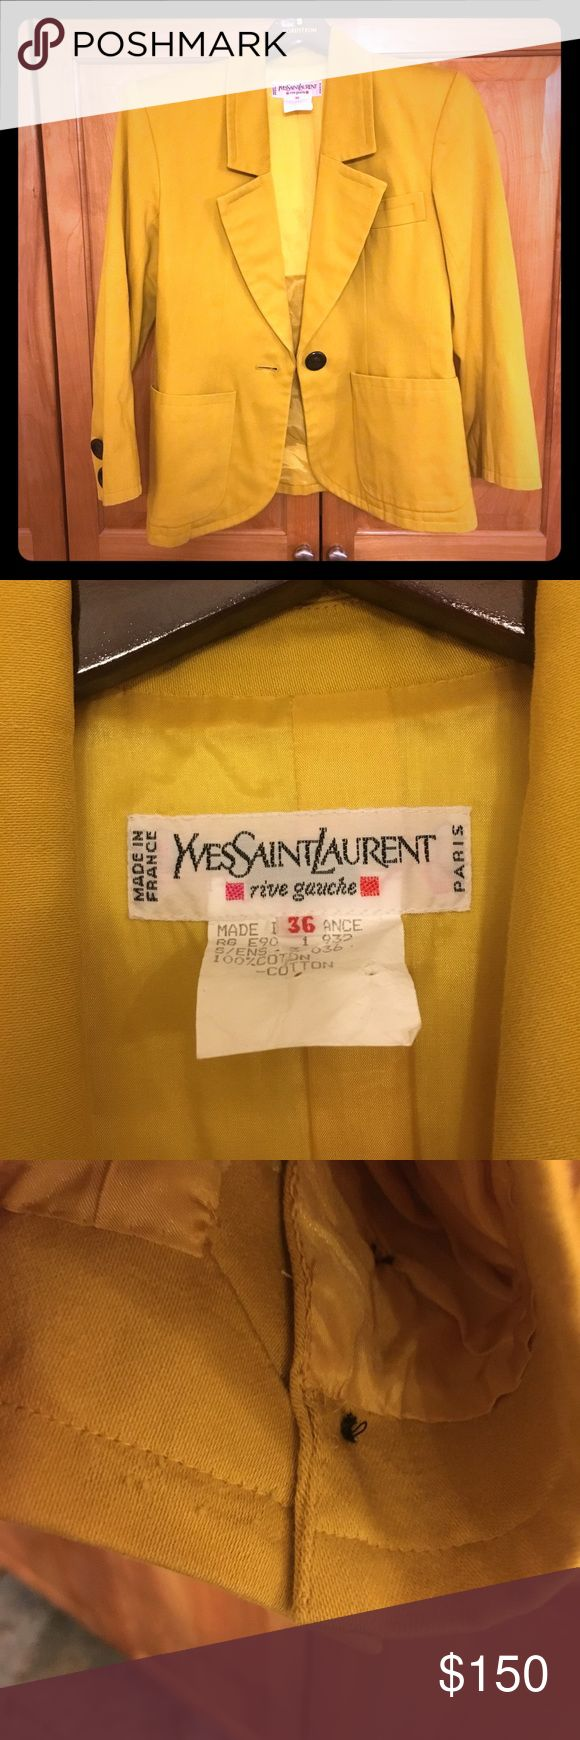 ONE DAY SALE Yves Saint Laurent skirt suit Gorgeous YSL Rive Gauche suit! Size 36. Only visible sign of wear is minimal pilling at sleeve (see photo). Yves Saint Laurent Skirts Skirt Sets